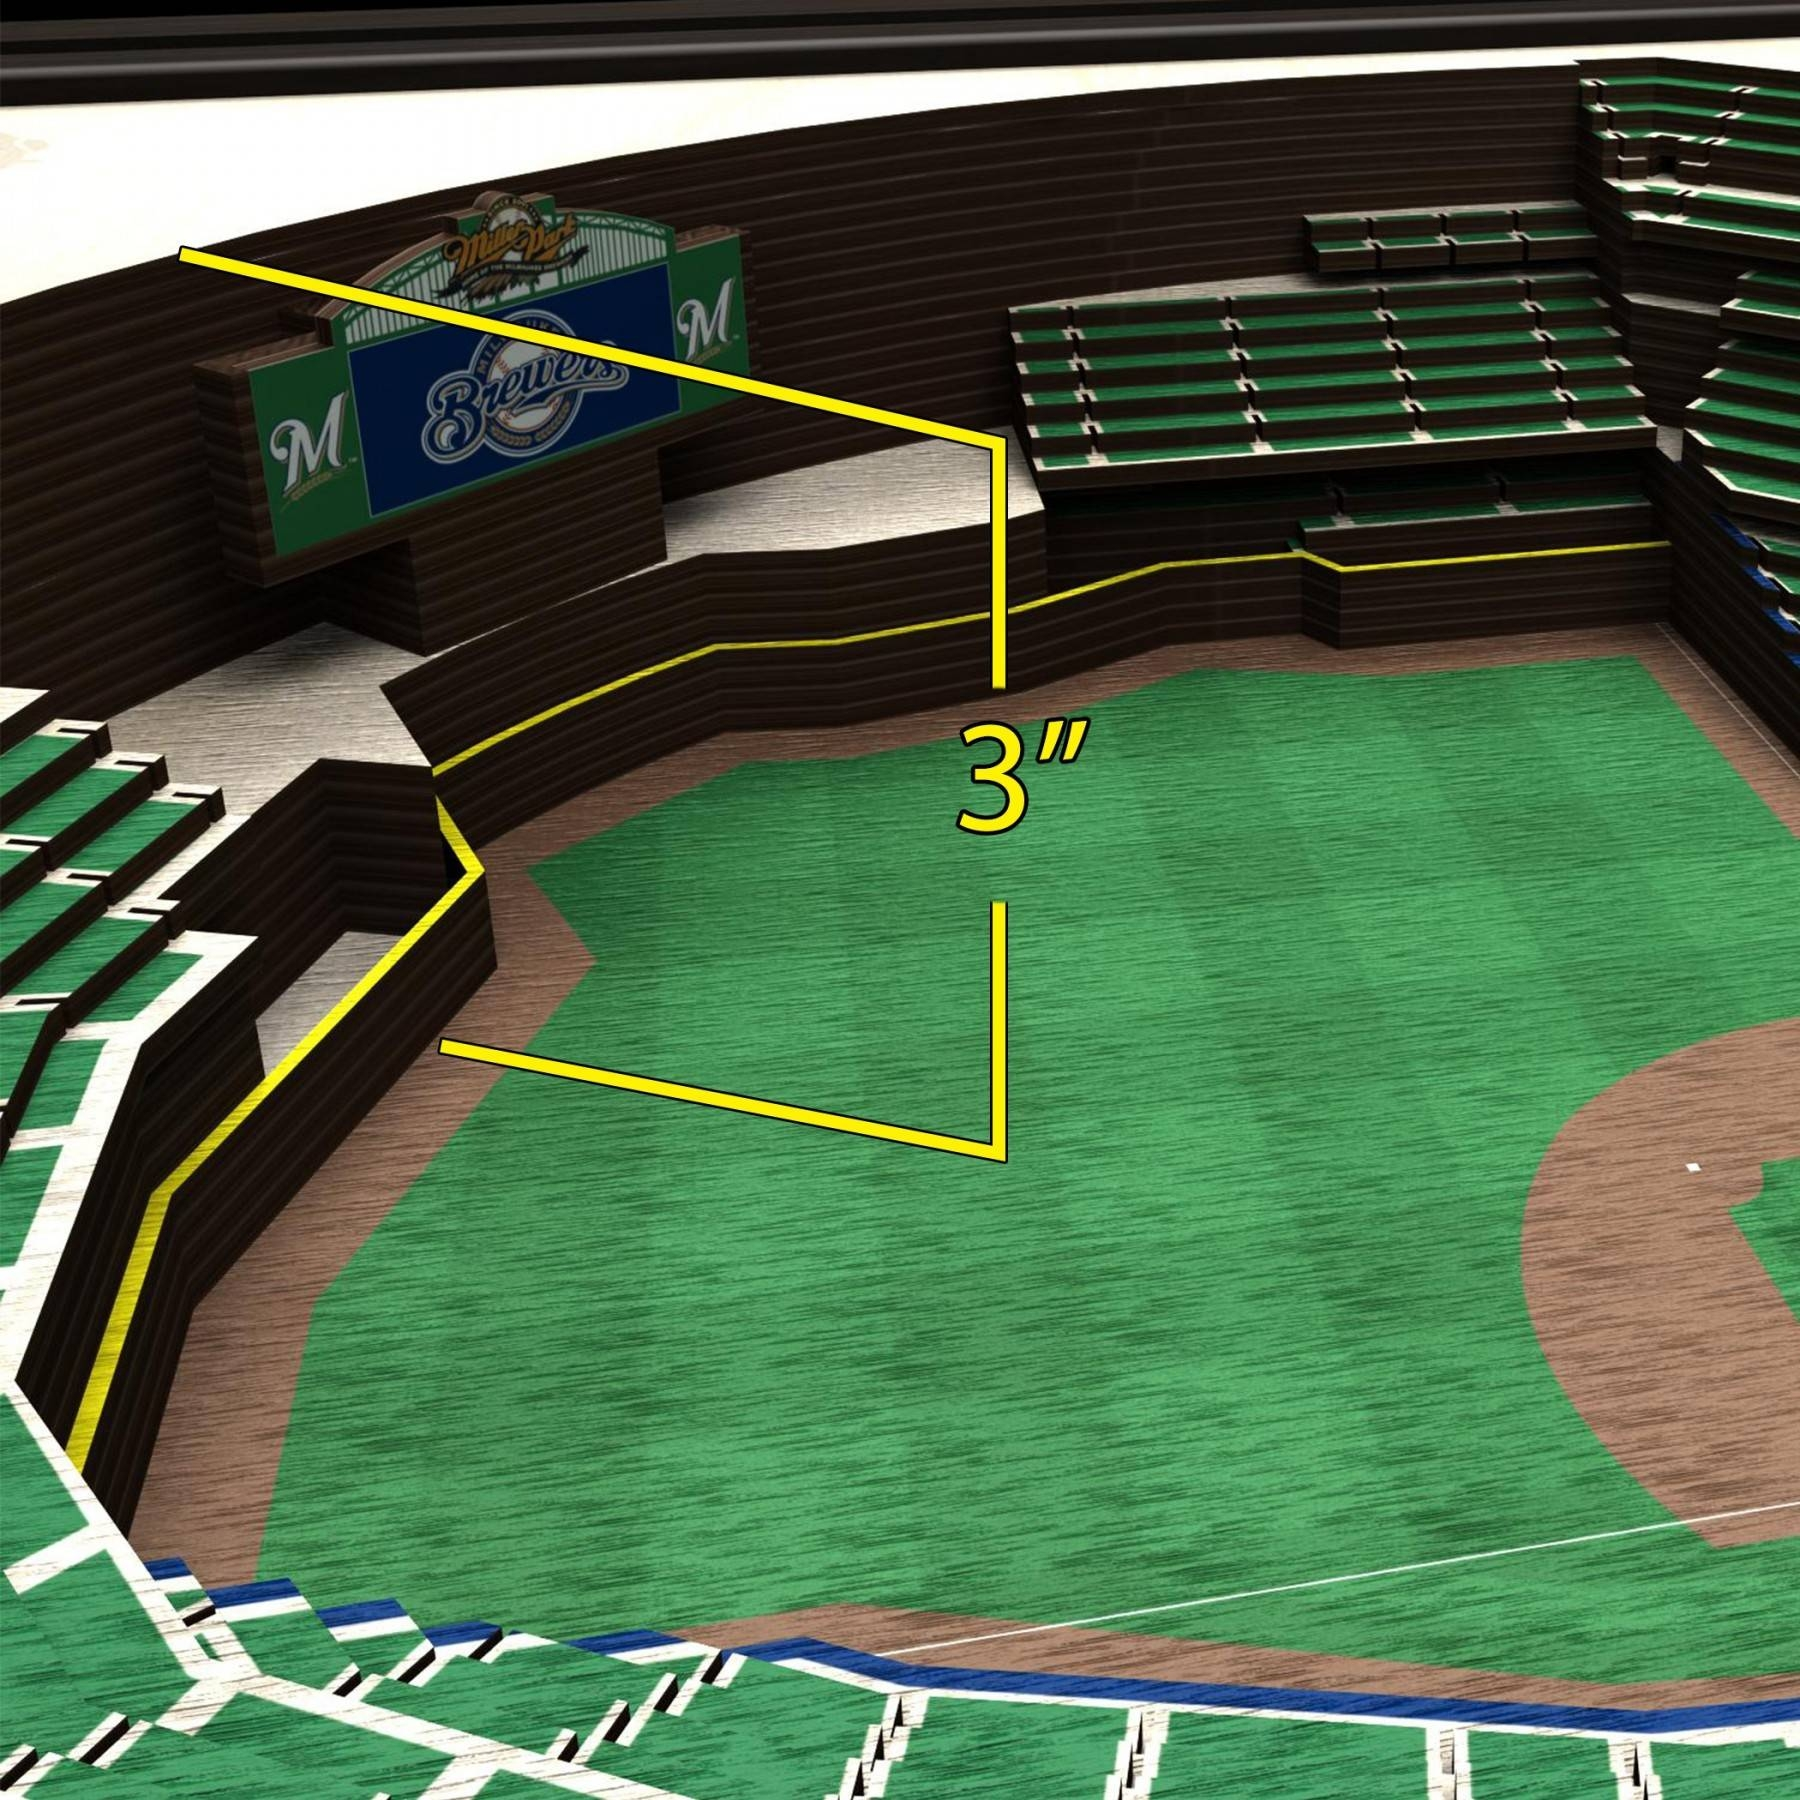 Milwaukee Brewers Stadiumview Wall Art – Miller Park 3 D Within Best And Newest Baseball 3D Wall Art (View 15 of 20)